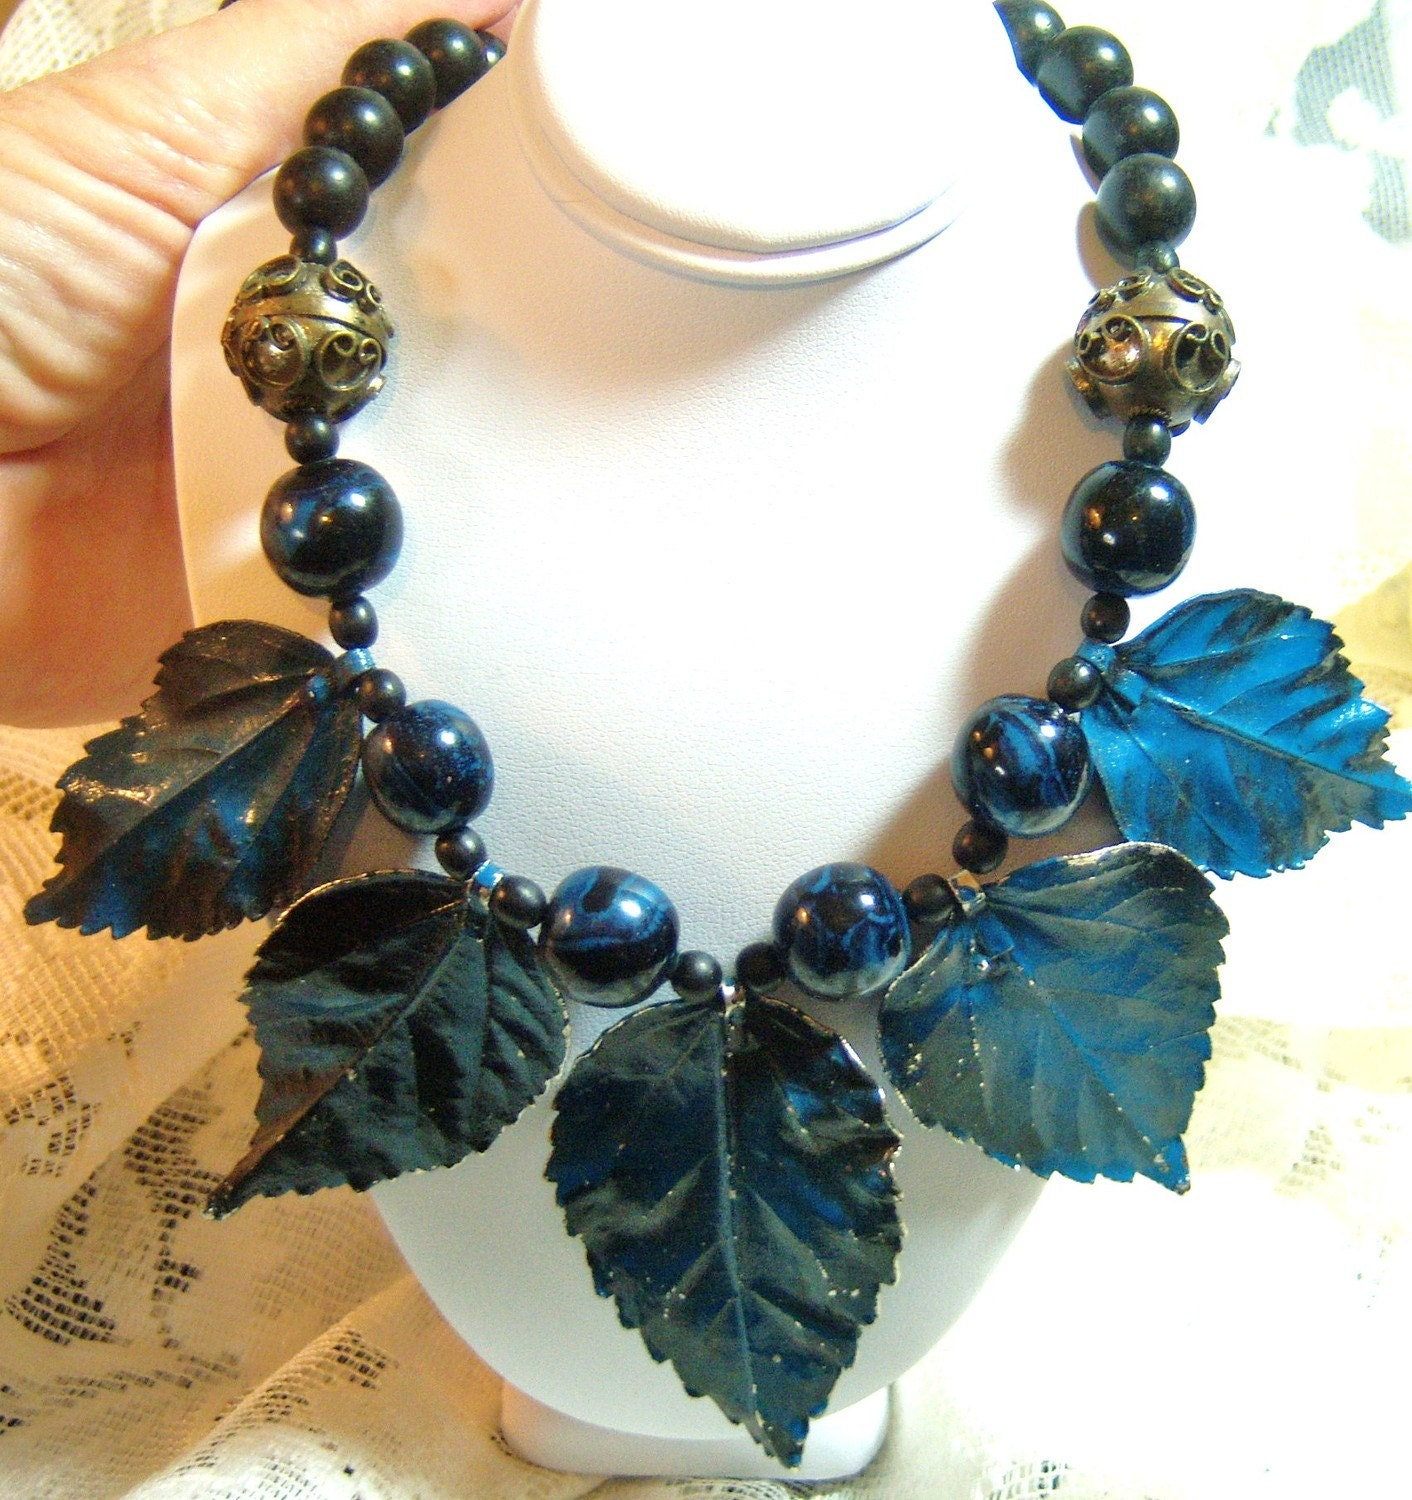 iridescent vintage necklace with black beads and blue leaves